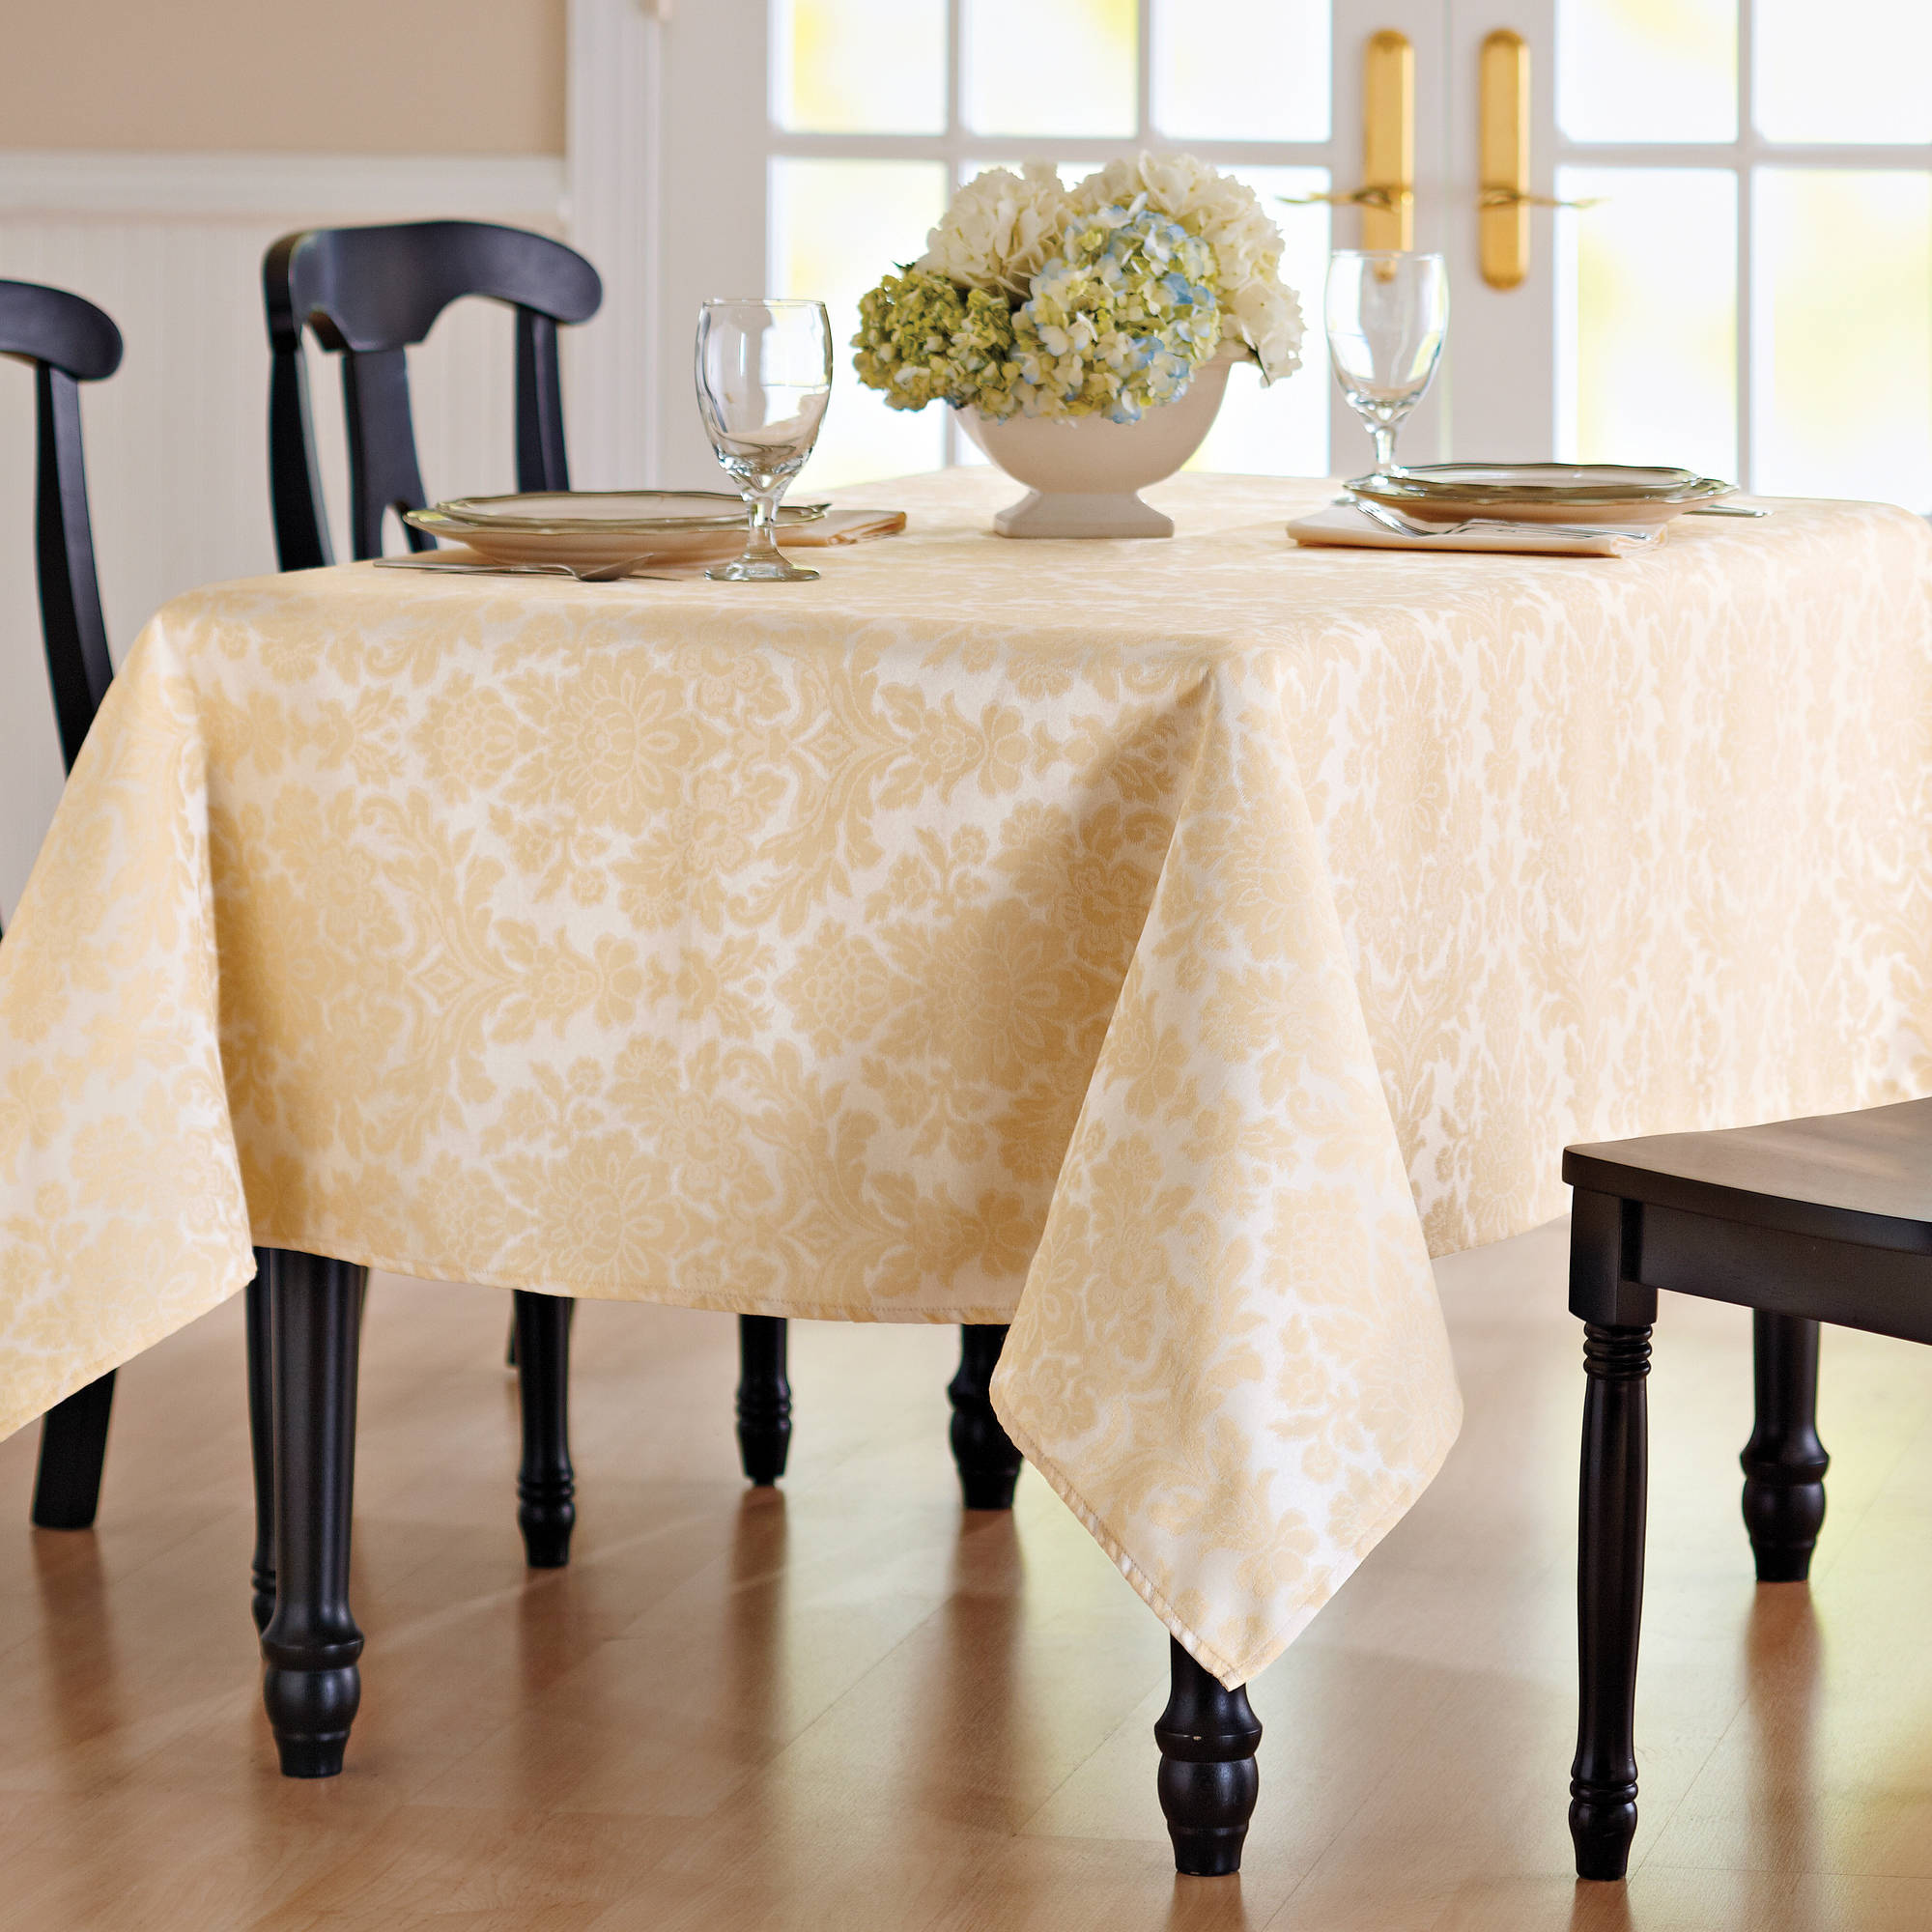 Better Homes and Gardens Medallion Damask Tablecloth